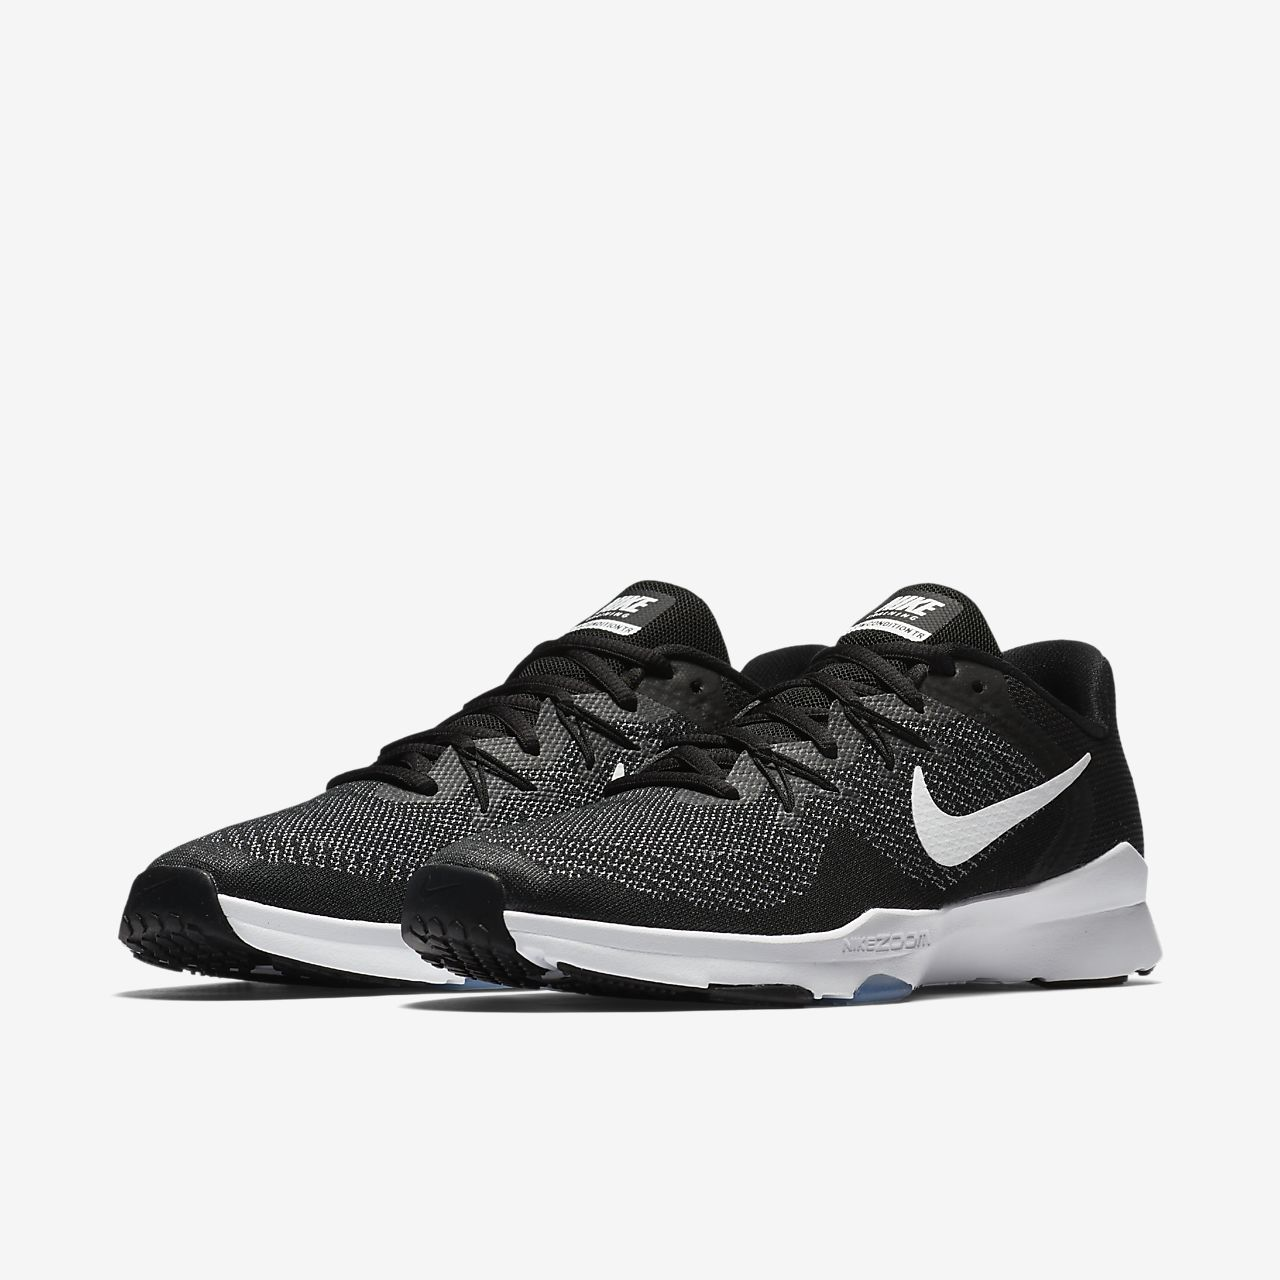 ... Nike Zoom Condition TR 2 Women's Training Shoe